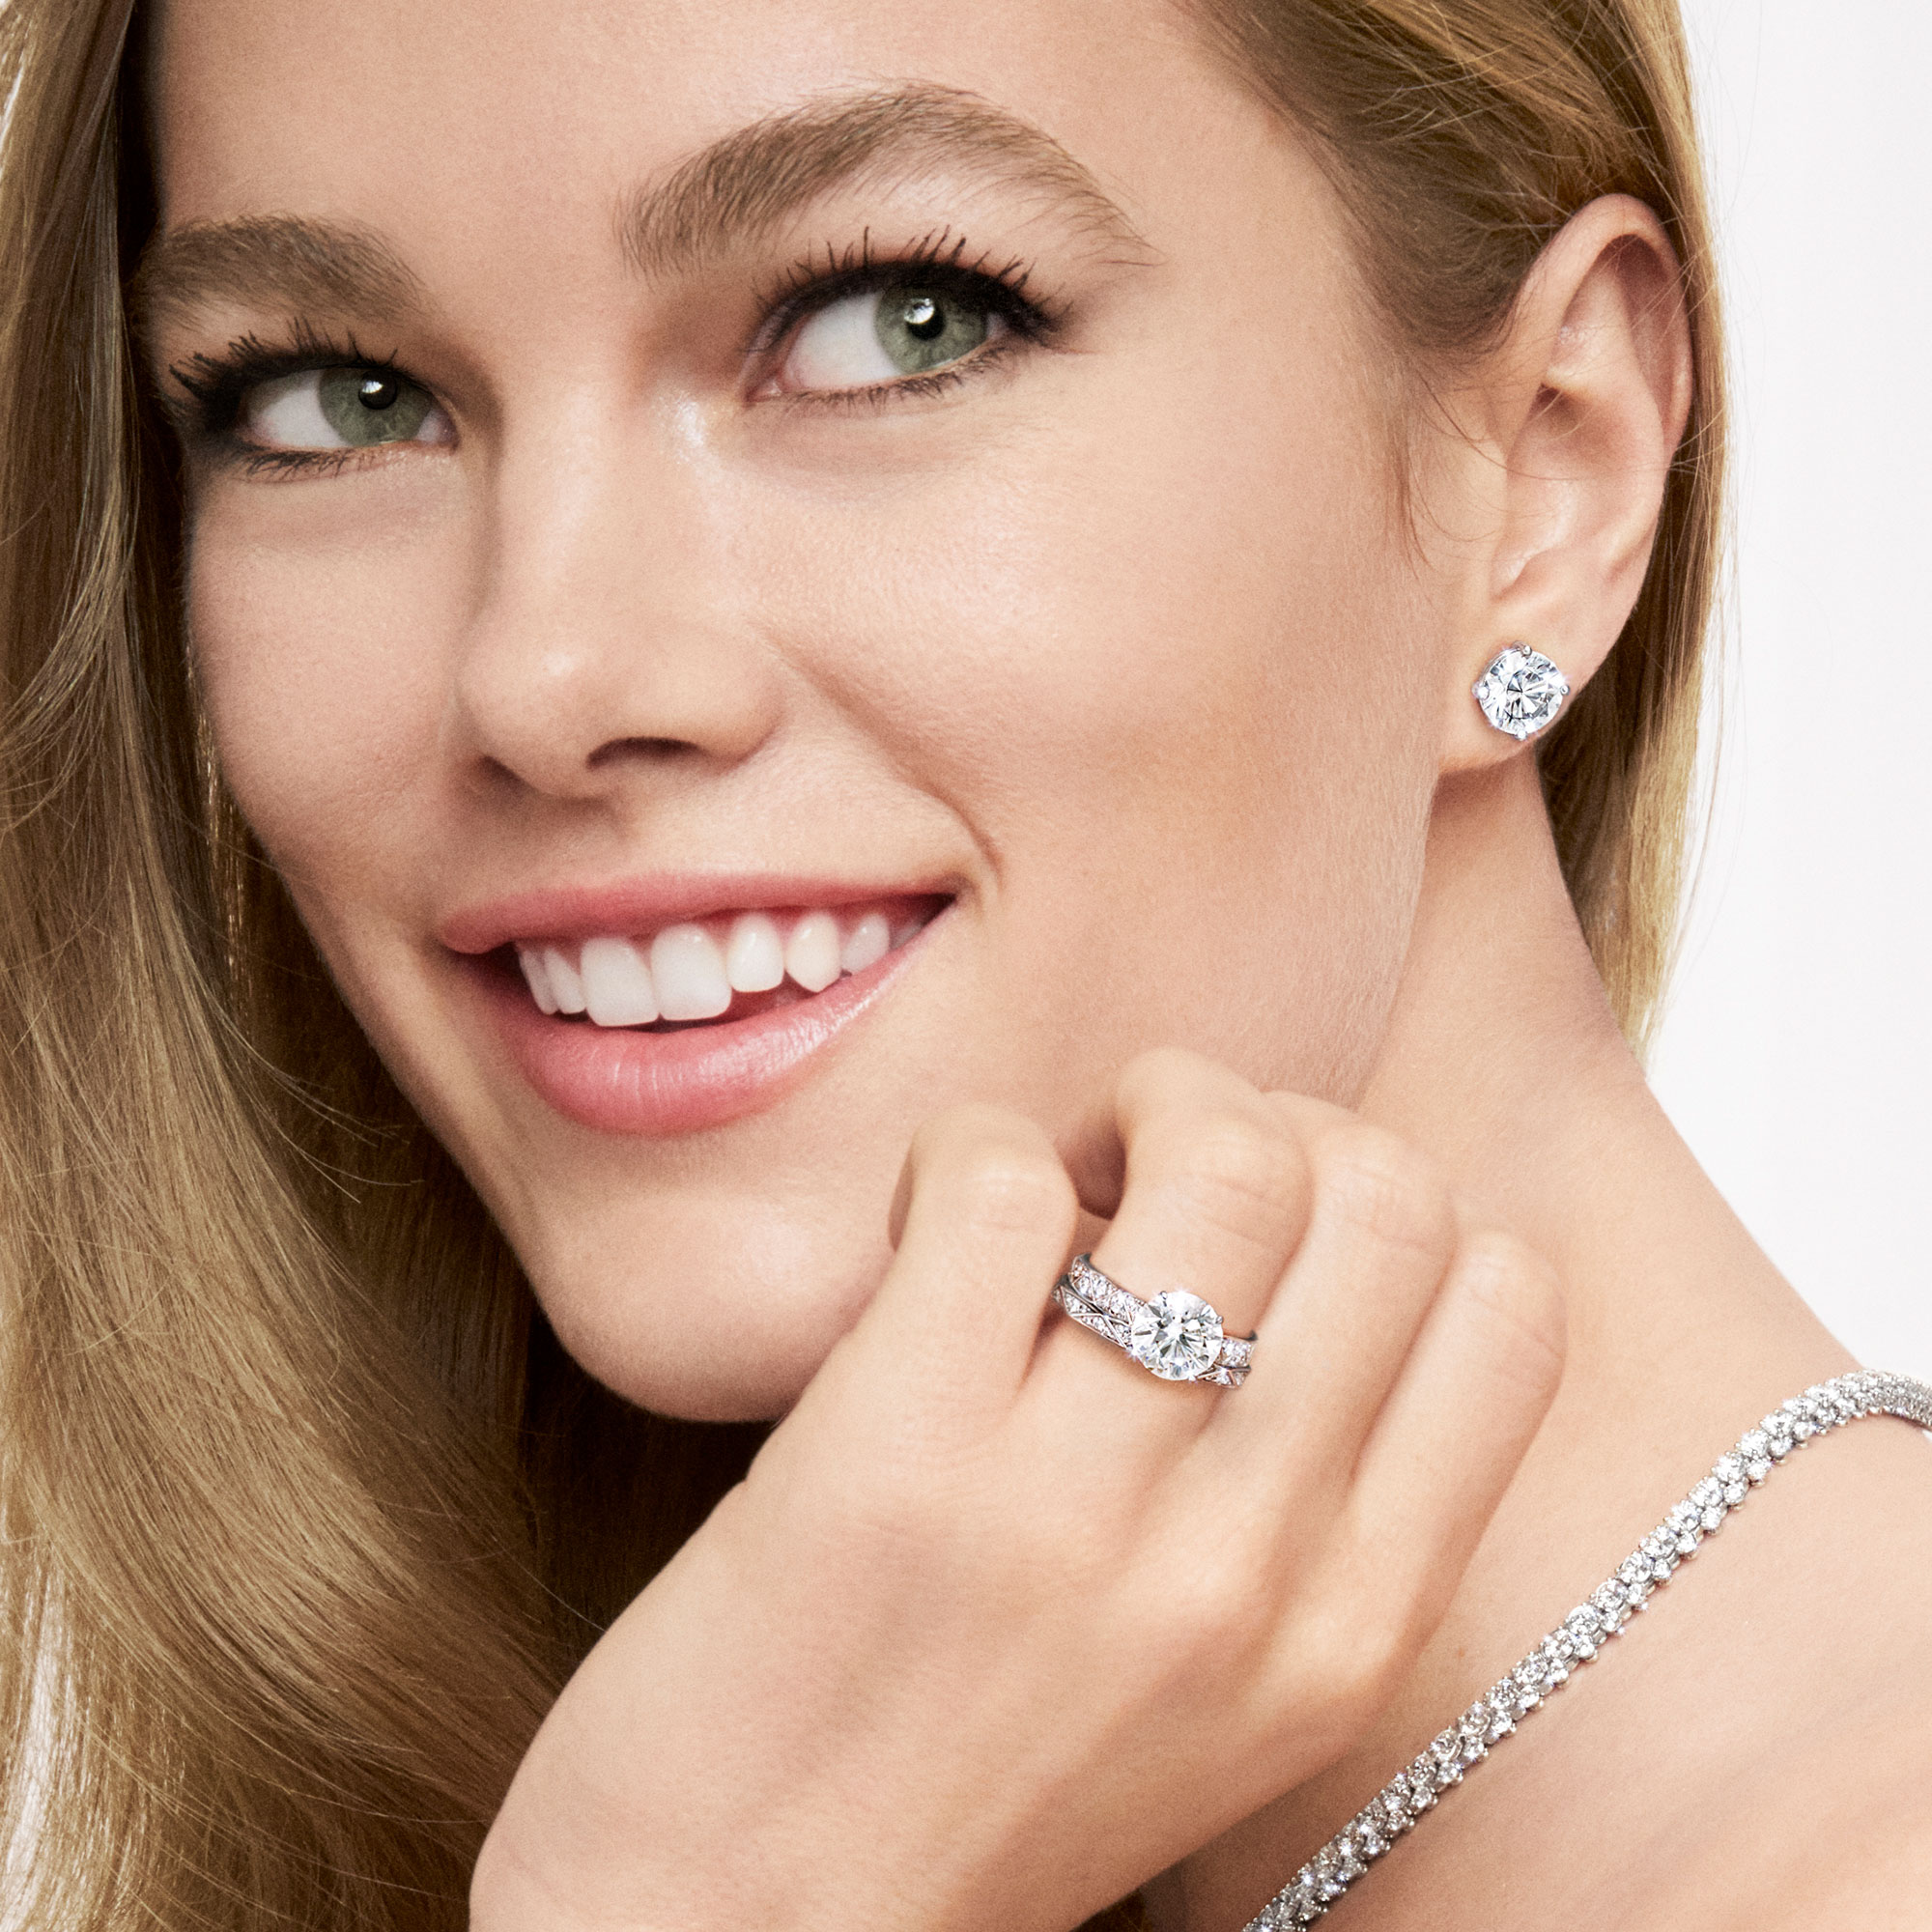 Model wearing Graff Round Diamond Stud Earrings and Laurence Graff Signature Round Diamond Engagement Ring and wessing band.